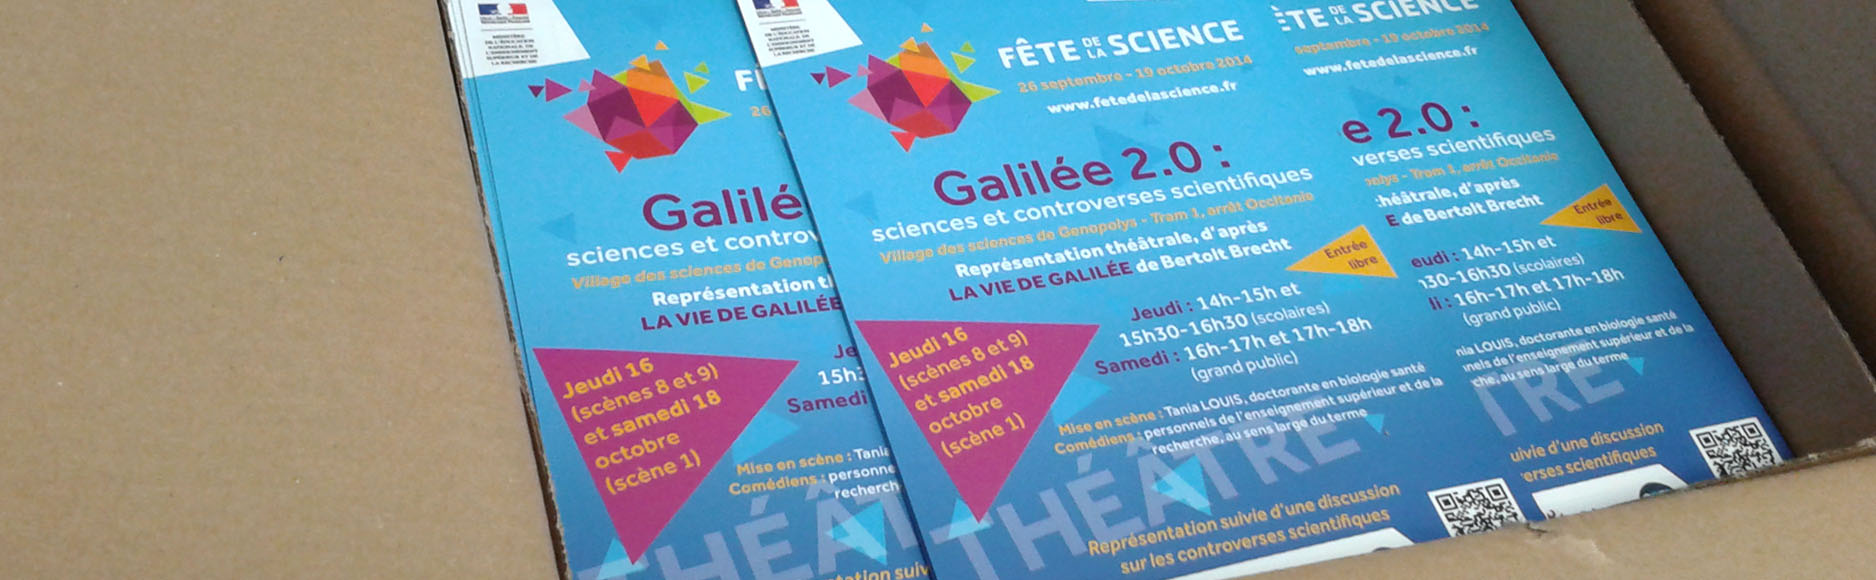 Flyers de Galilée 2.0